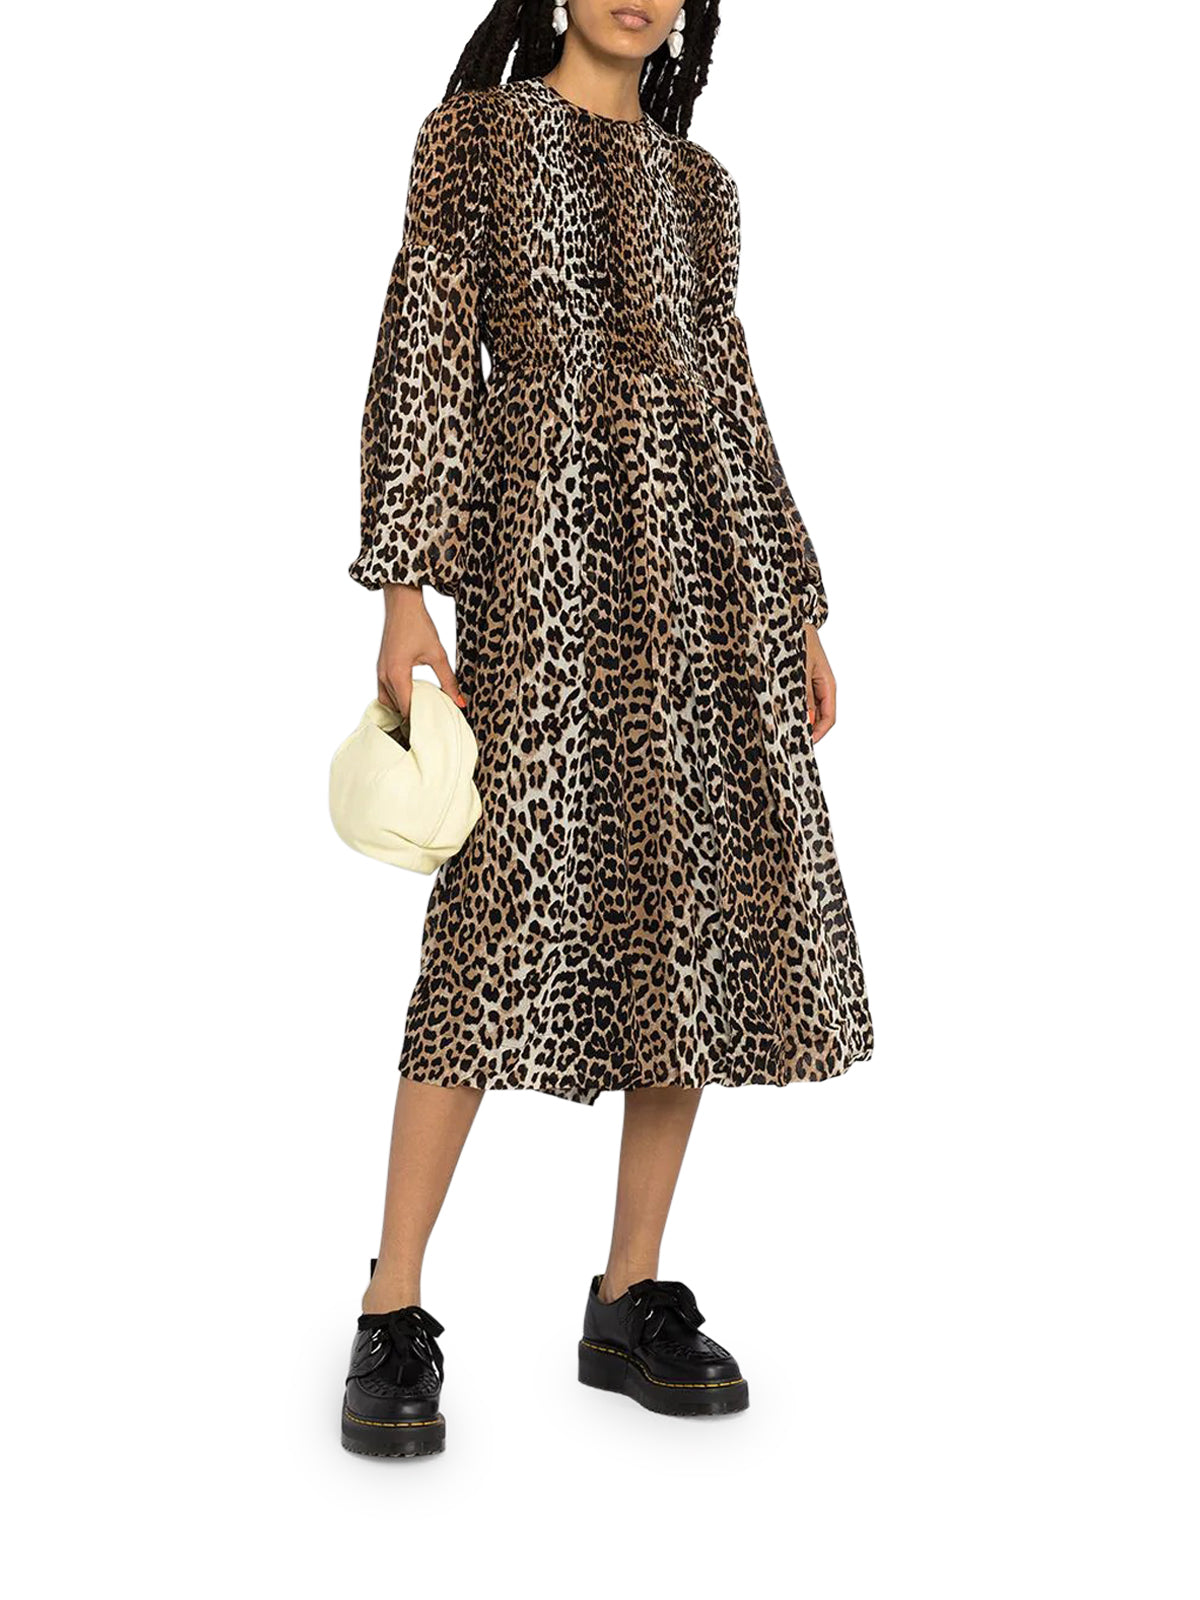 leopard-print ruched dress